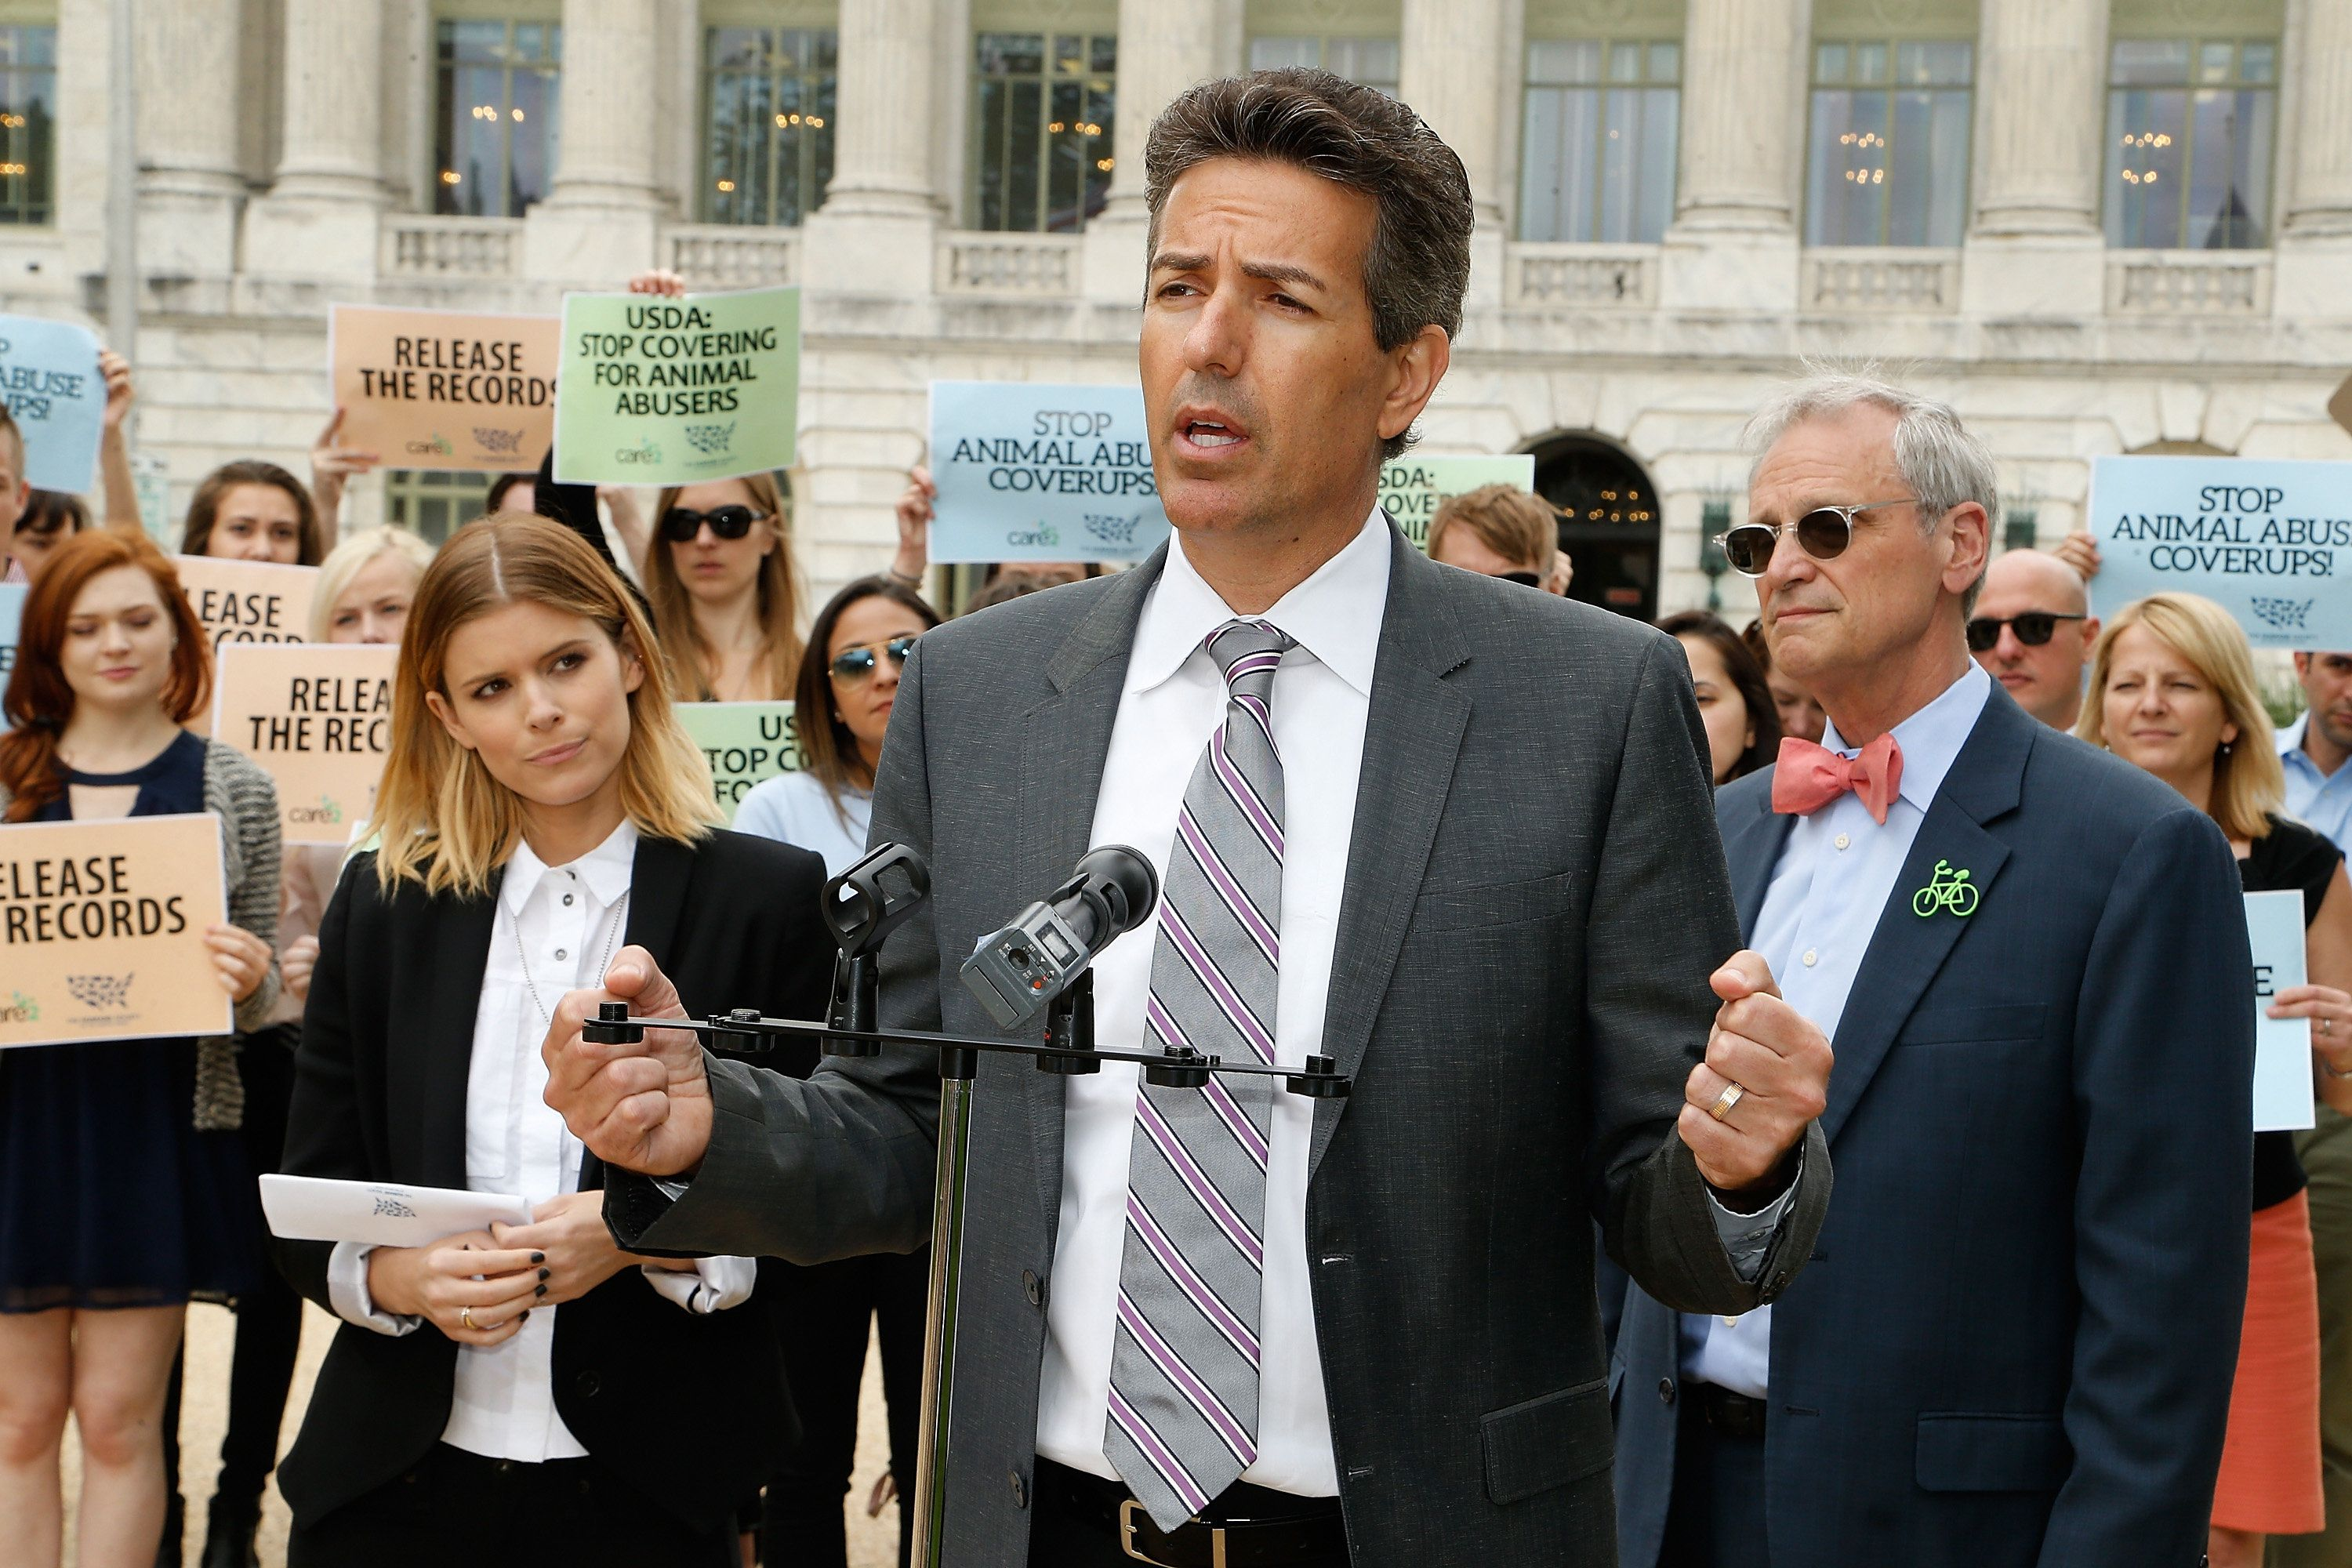 WASHINGTON, DC - JUNE 07:  Wayne Pacelle, CEO HSUS, speaks at The Humane Society of the United States' rally at USDA on June 7, 2017 in Washington, DC.  Advocates rallied to urge USDA to restore online records of animal welfare violations.  (Photo by Paul Morigi/Getty Images for The Humane Society of the United States )